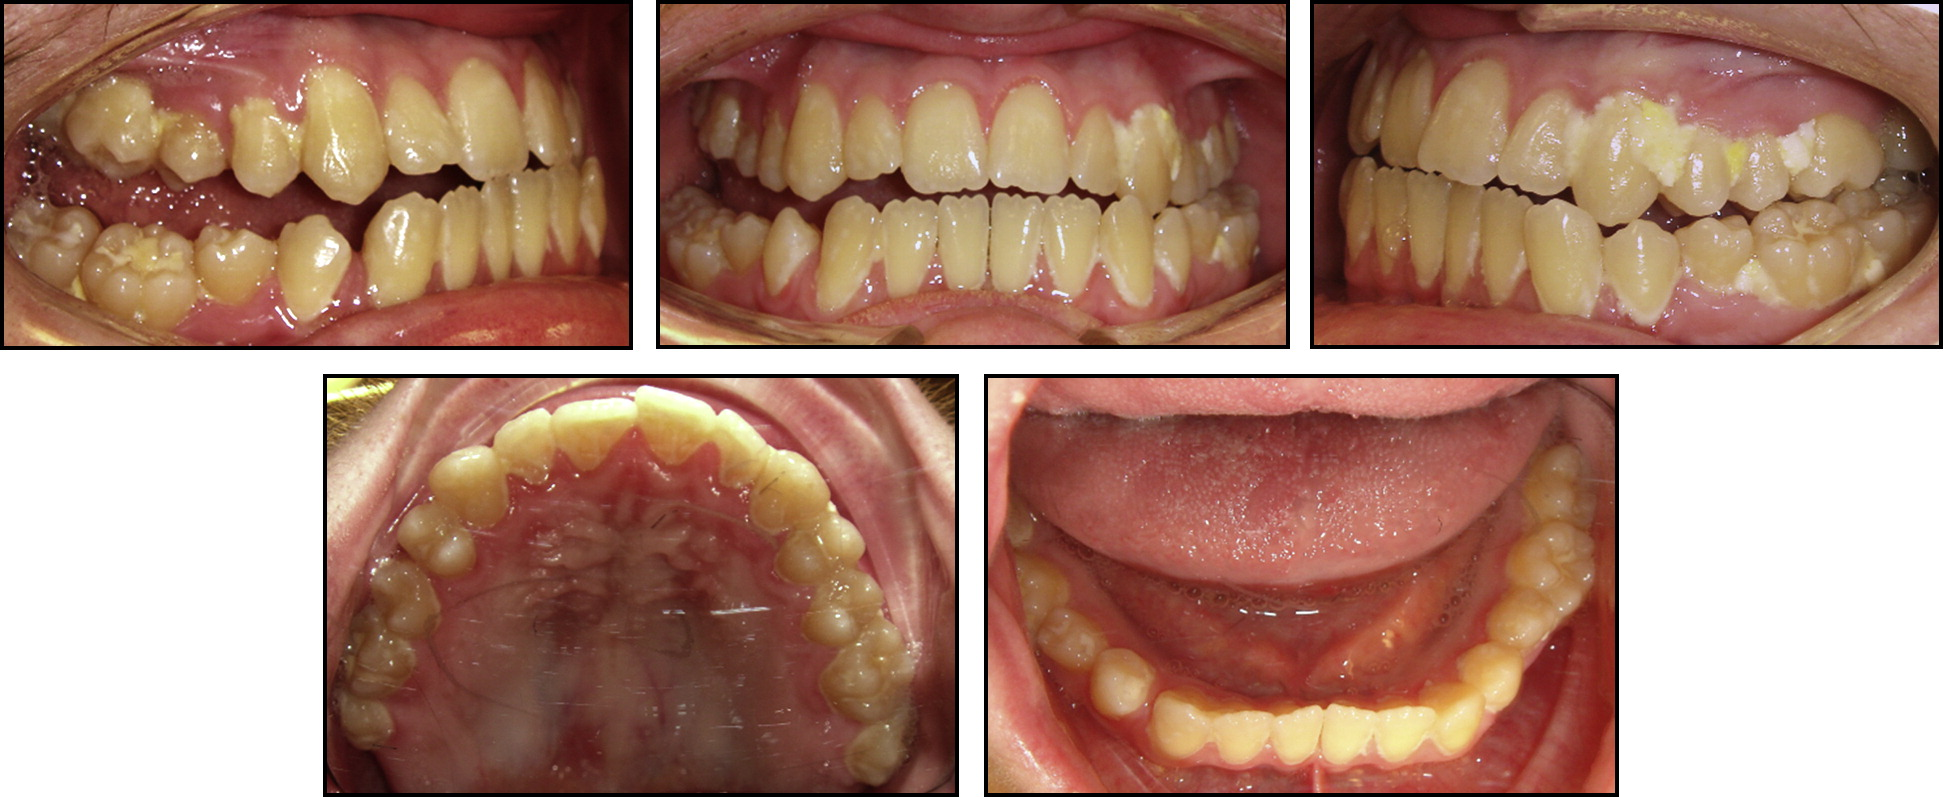 orthodontic treatment of a patient with duchenne muscular